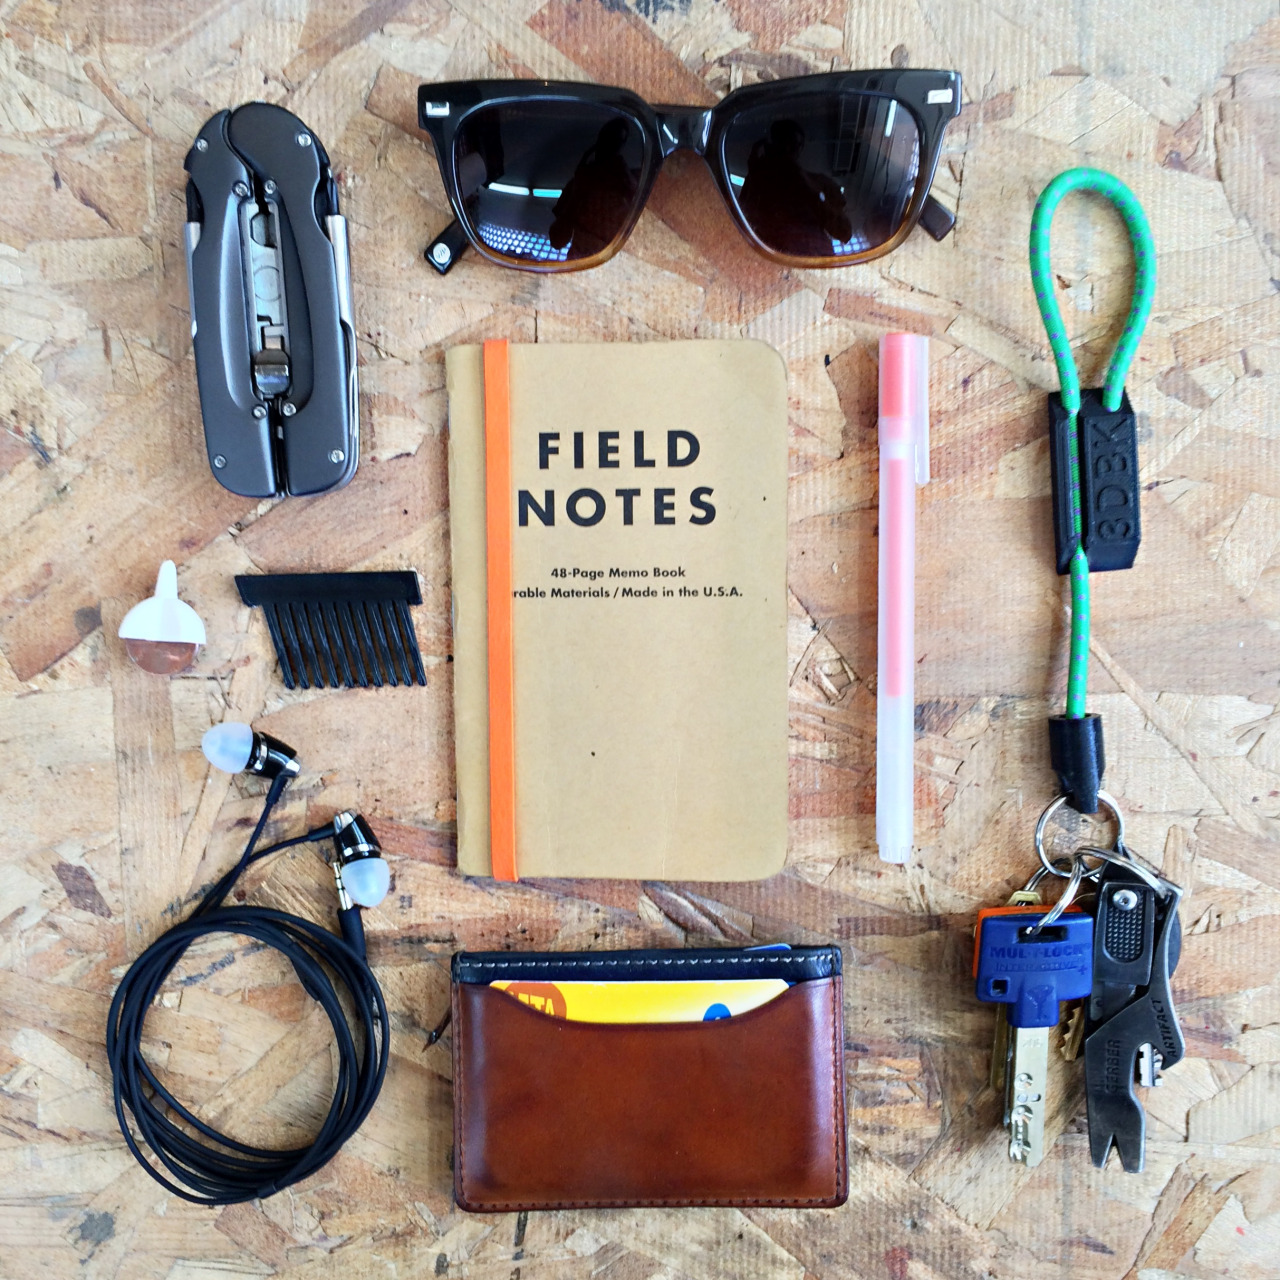 everydaycarry :       Gerber Balance Multitool   ($42)     Warby Parker Winston Sunglasses   ($95+)     3DBrooklyn Bungee Carabiner   ($11)     Gerber Artifact   ($10)     3DBrooklyn Spinning Top Business Card     3DBrooklyn Pocket Comb     Field Notes Notebook   ($4)     Muji Pen   ($2)     Klipsch Image S4   ($70)     Jack Spade Mitchell Card Holder   ($78)       Designer/Creator, 3DBrooklyn in NYC, NY      Read More